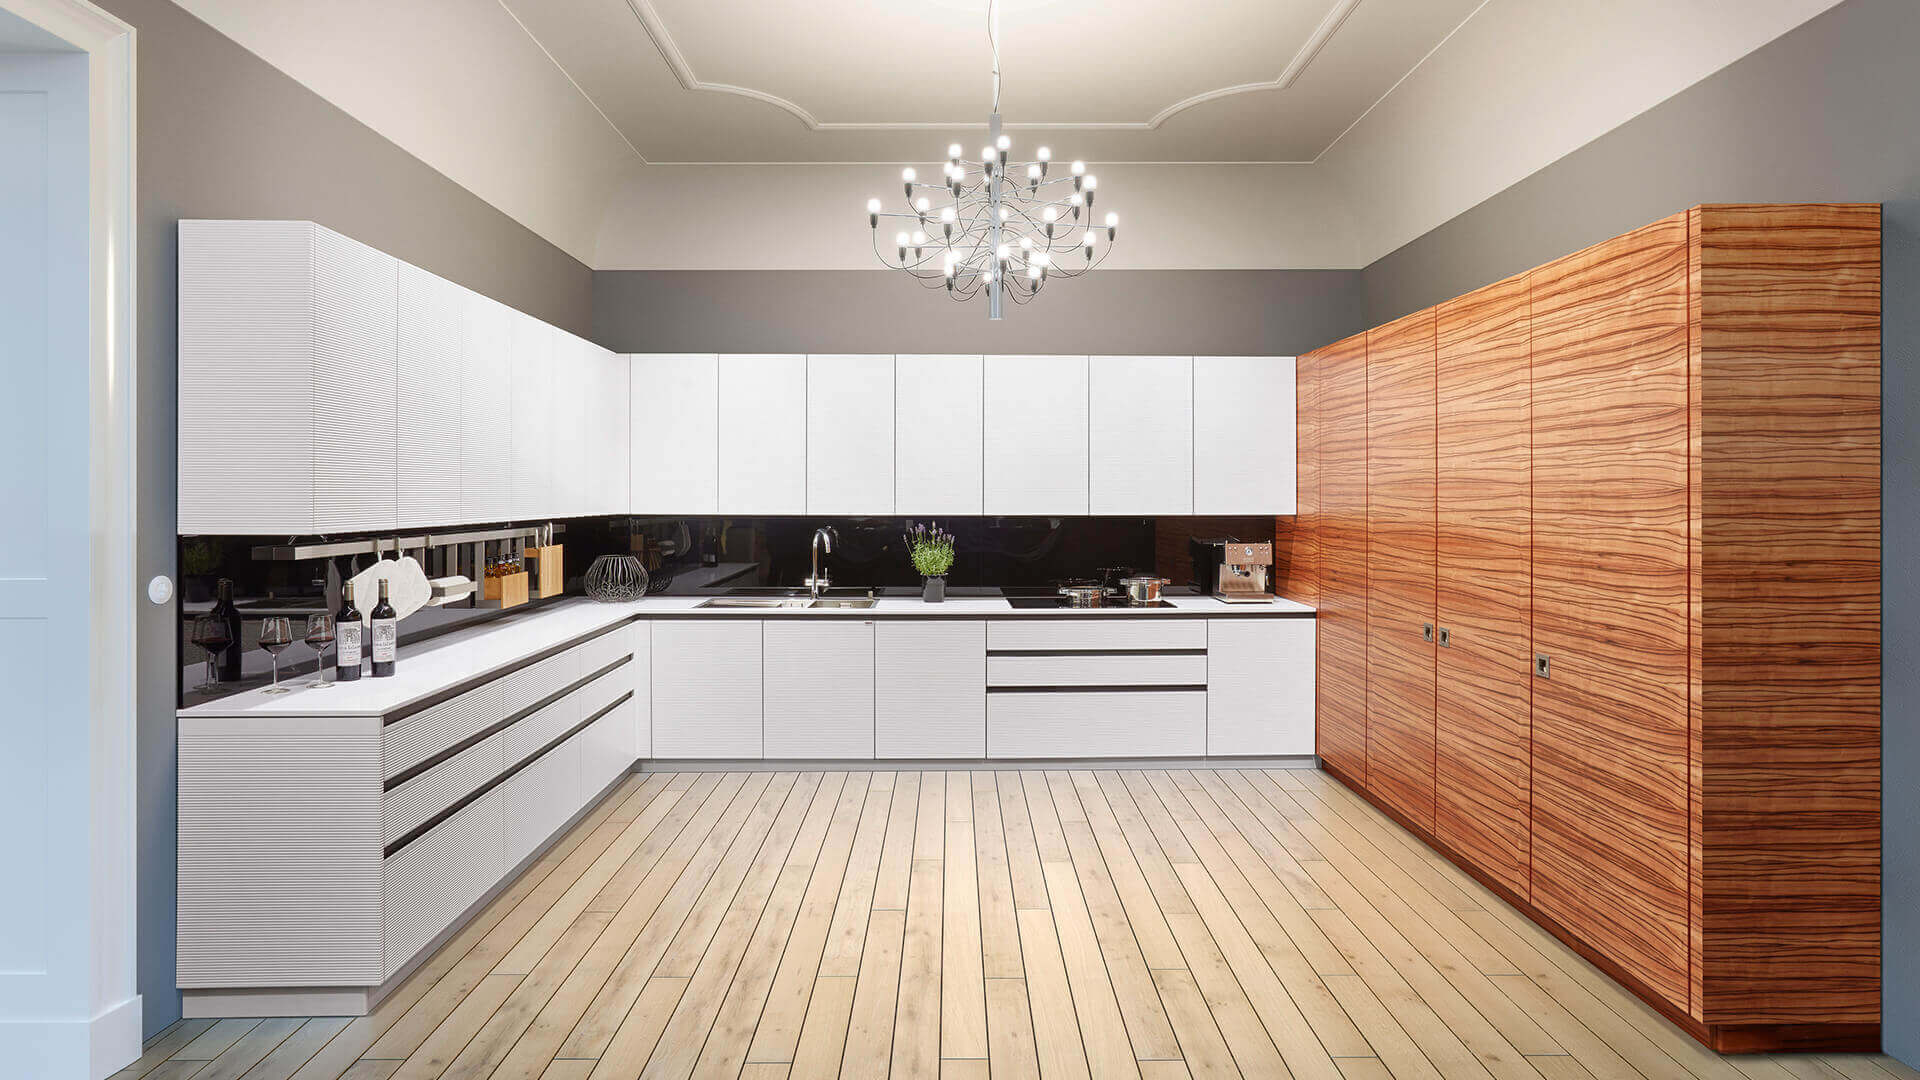 The Types And Comforts Of Kitchen Cabinets